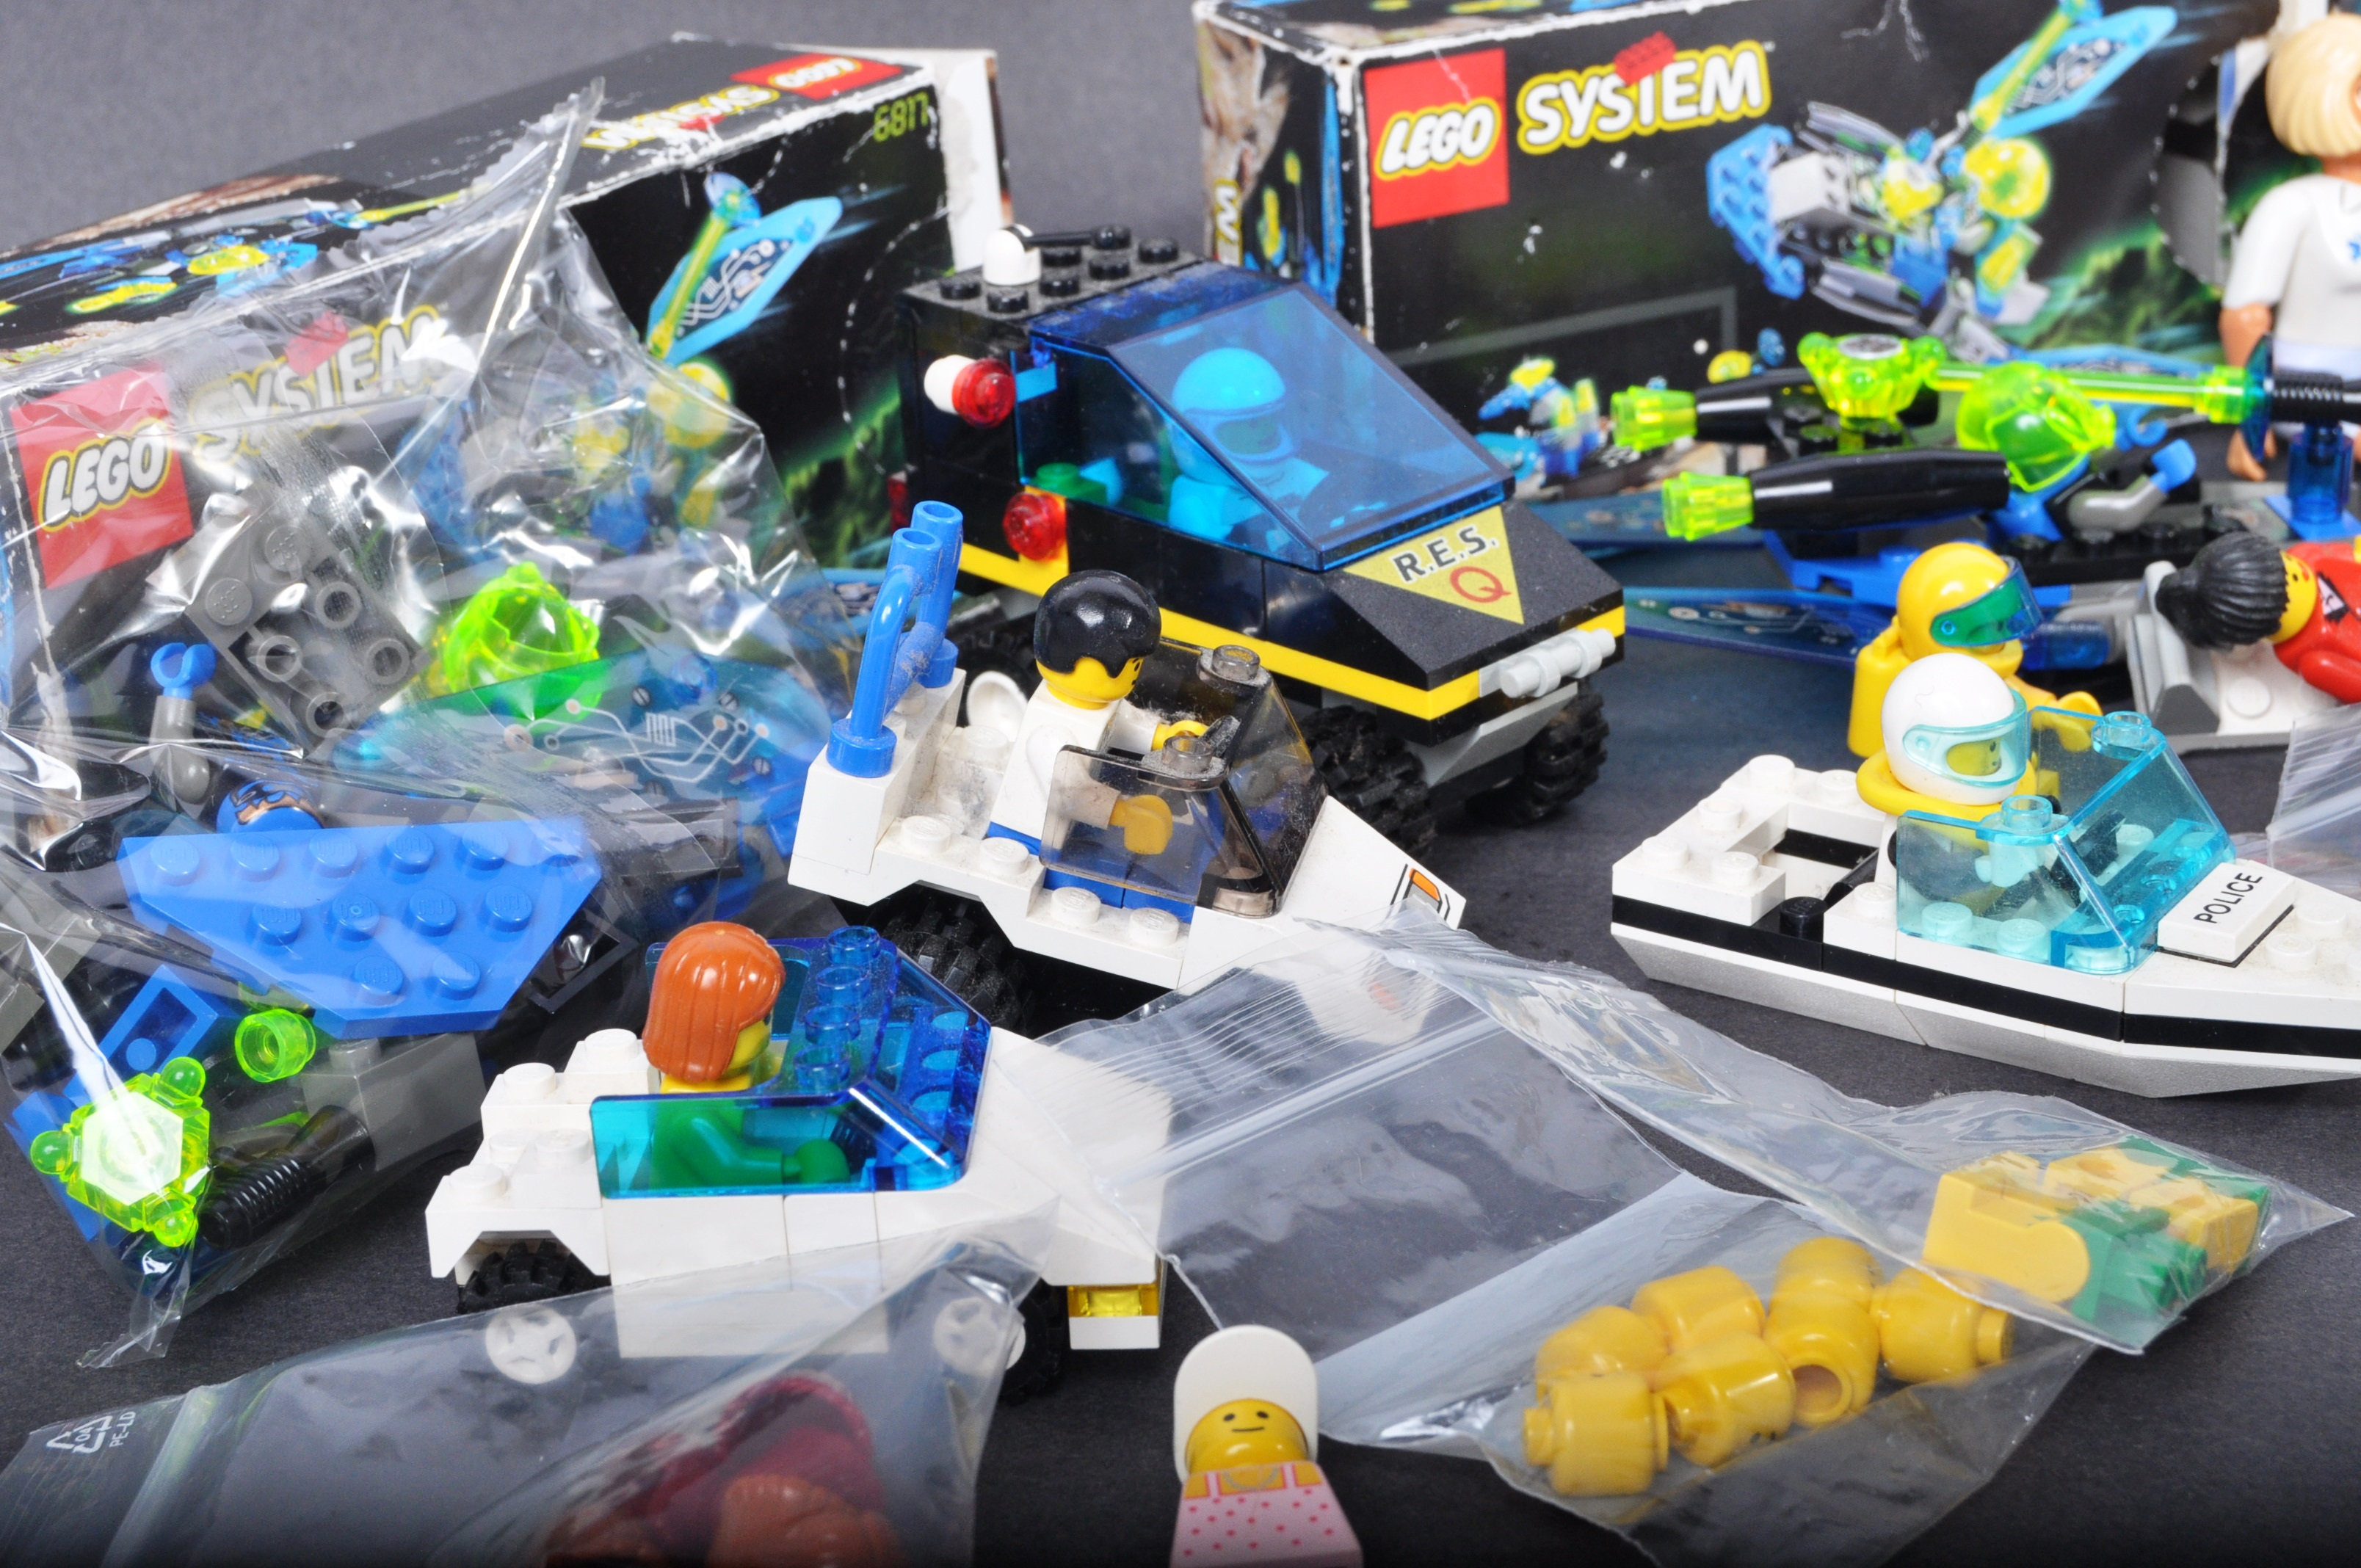 COLLECTION OF ASSORTED VINTAGE MINI LEGO SETS & MINIFIGURES - Image 3 of 10